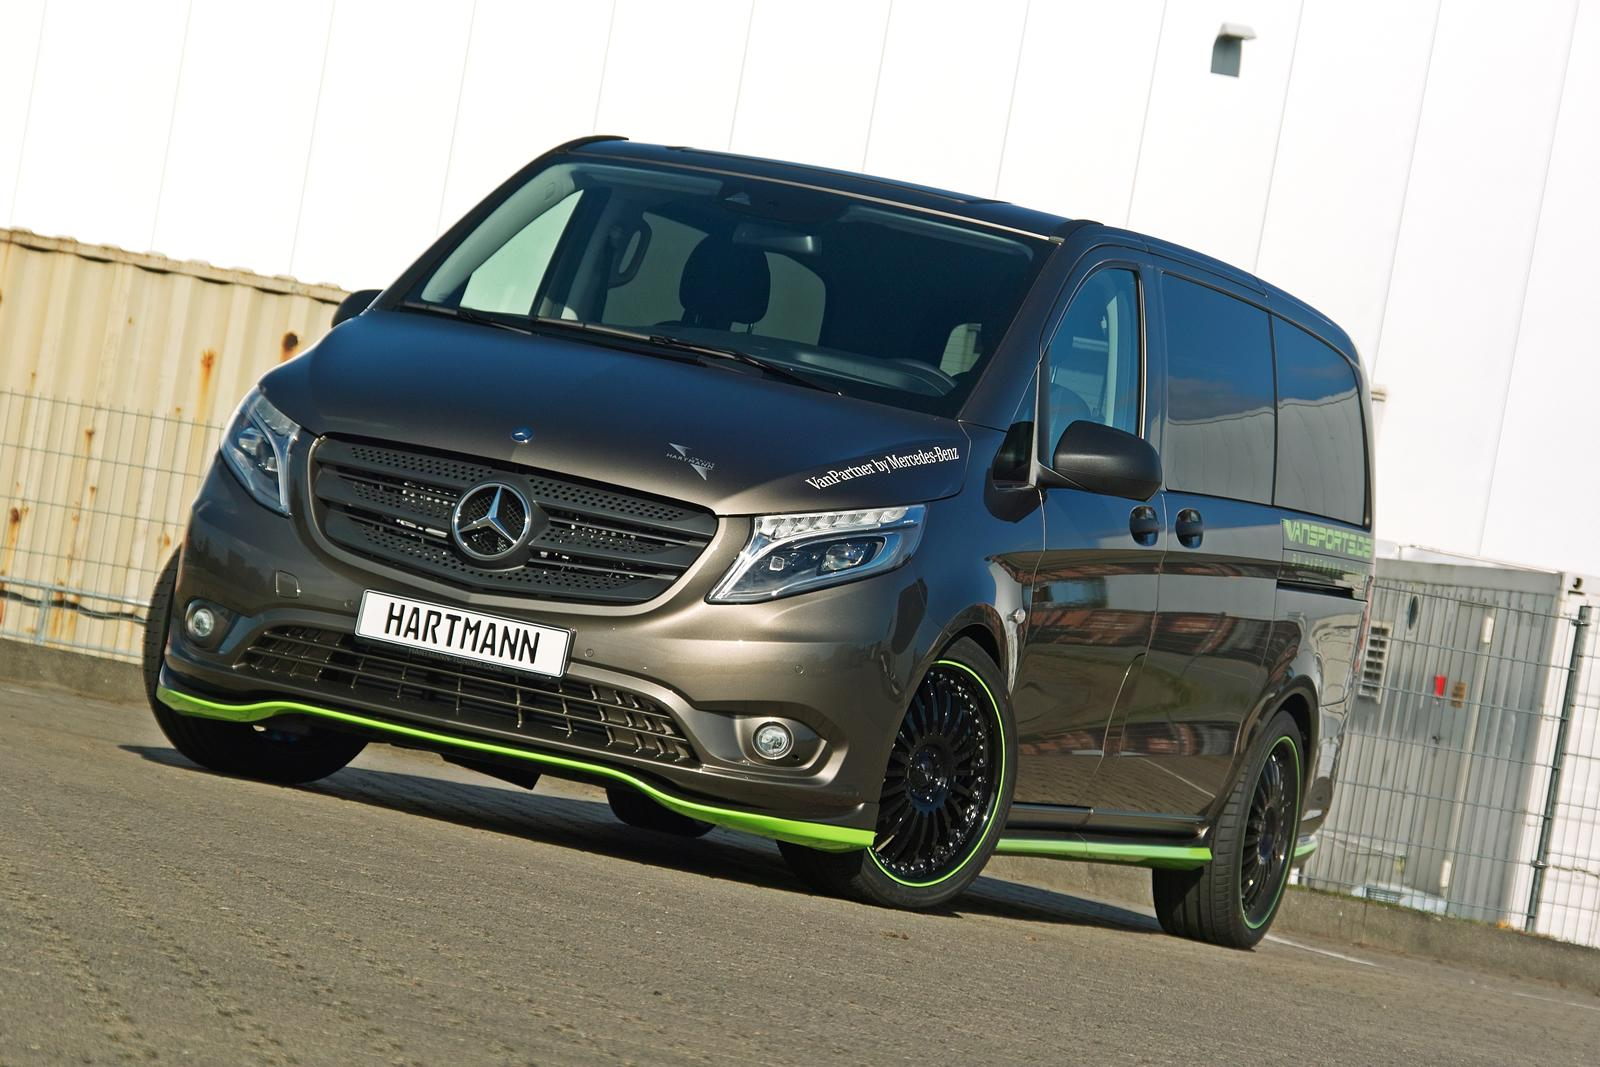 hartmann mercedes benz v class will scare your kids. Black Bedroom Furniture Sets. Home Design Ideas